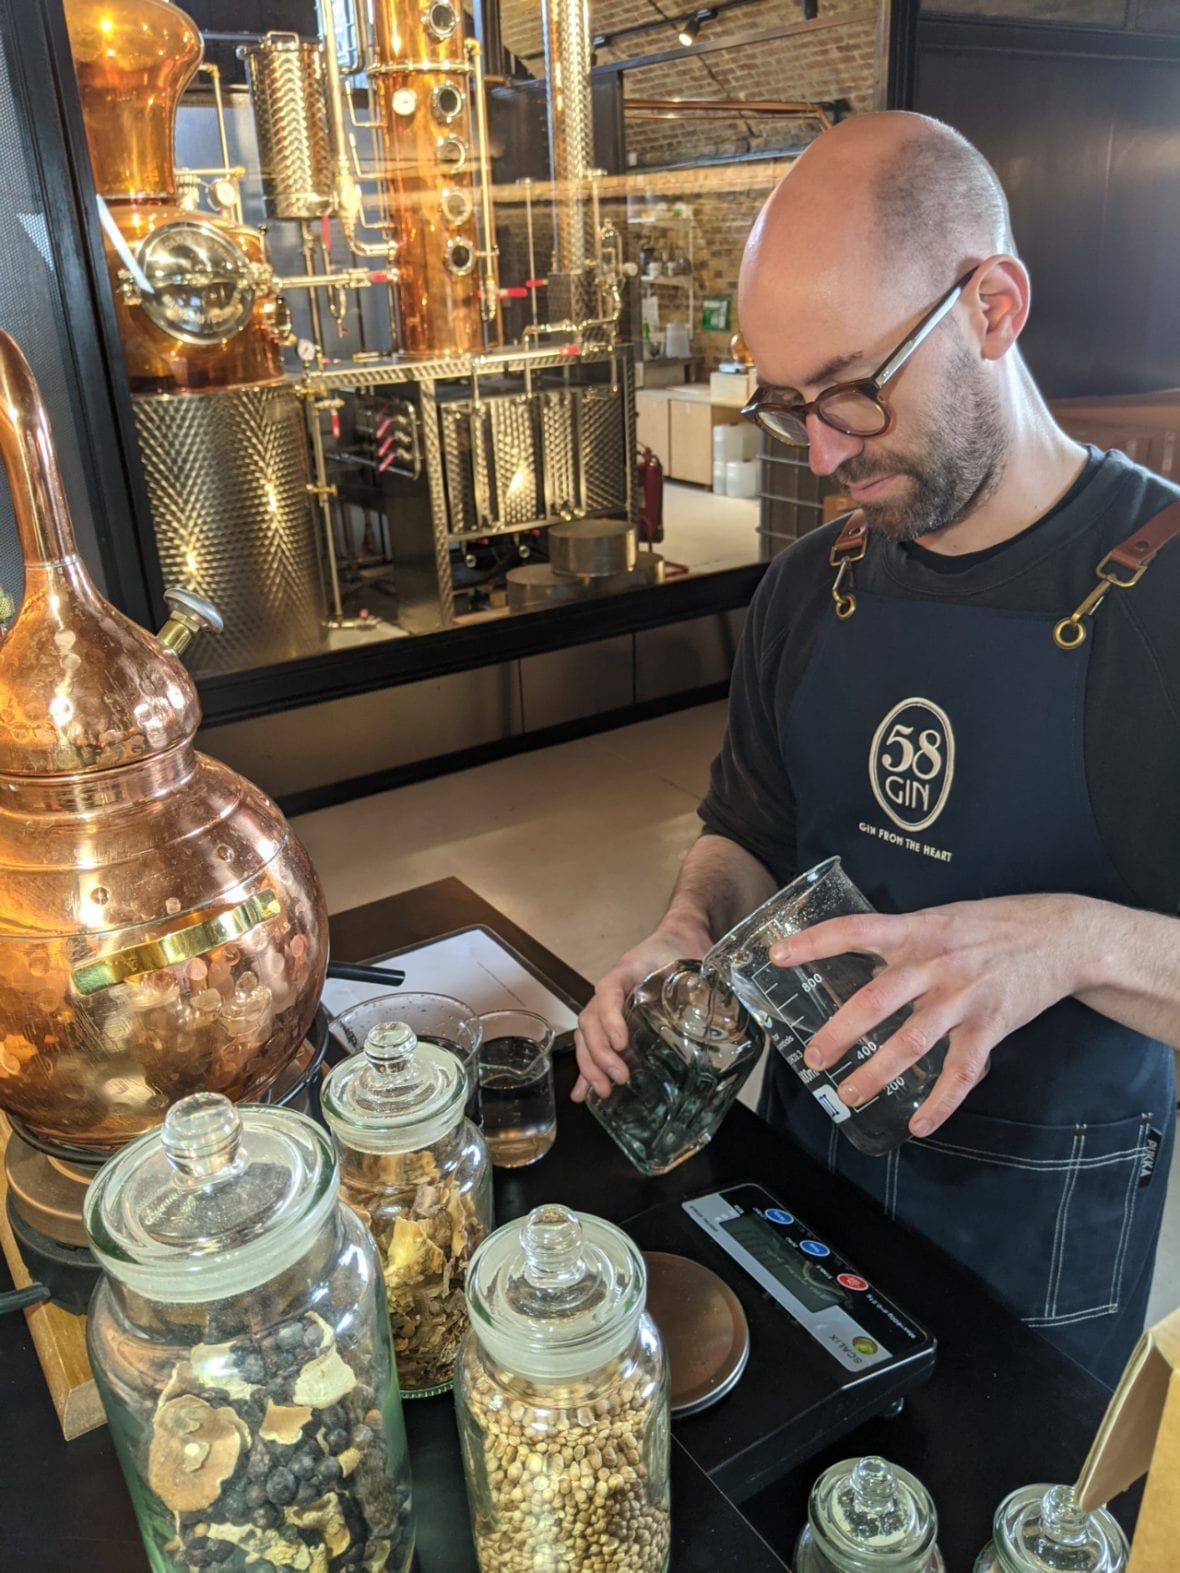 Creating Hand Crafted Gin